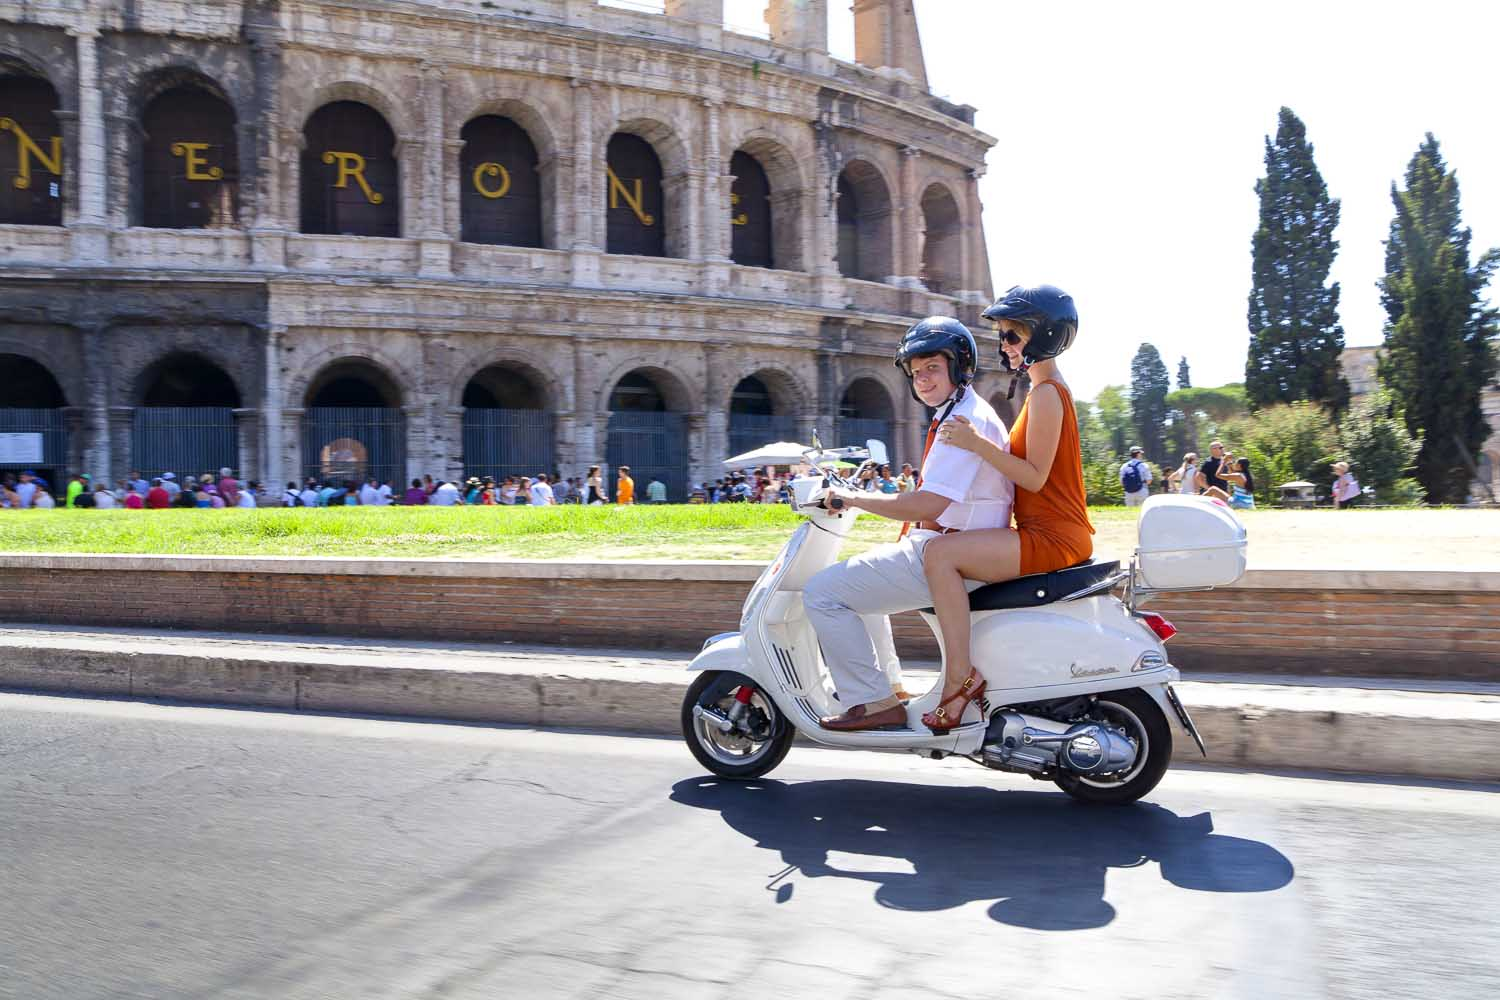 On a scooter around the city of Rome on a Vespa tour